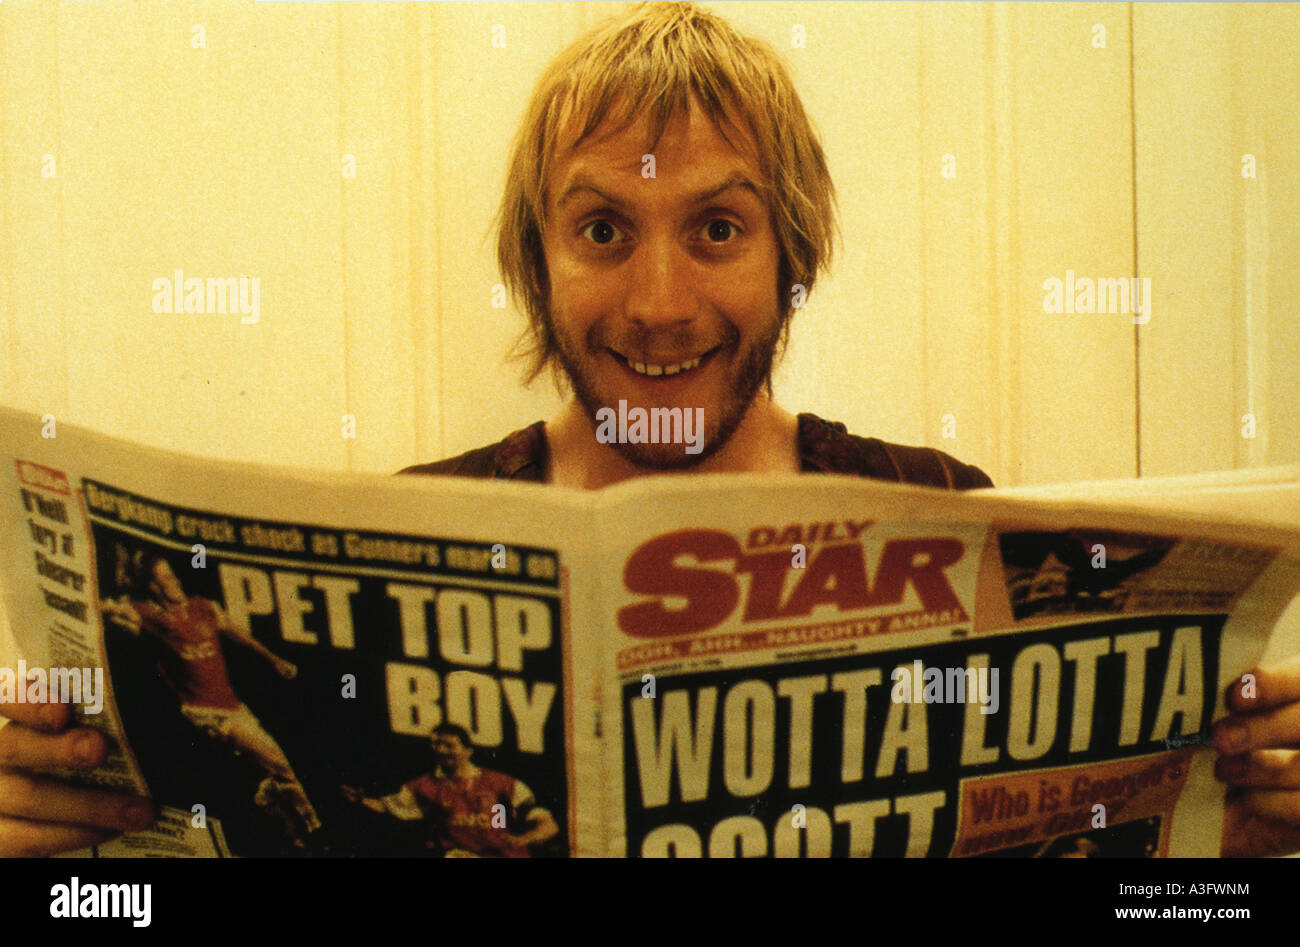 NOTTING HILL  1999 Polygram/Working Title film with Rhys Ifans - Stock Image